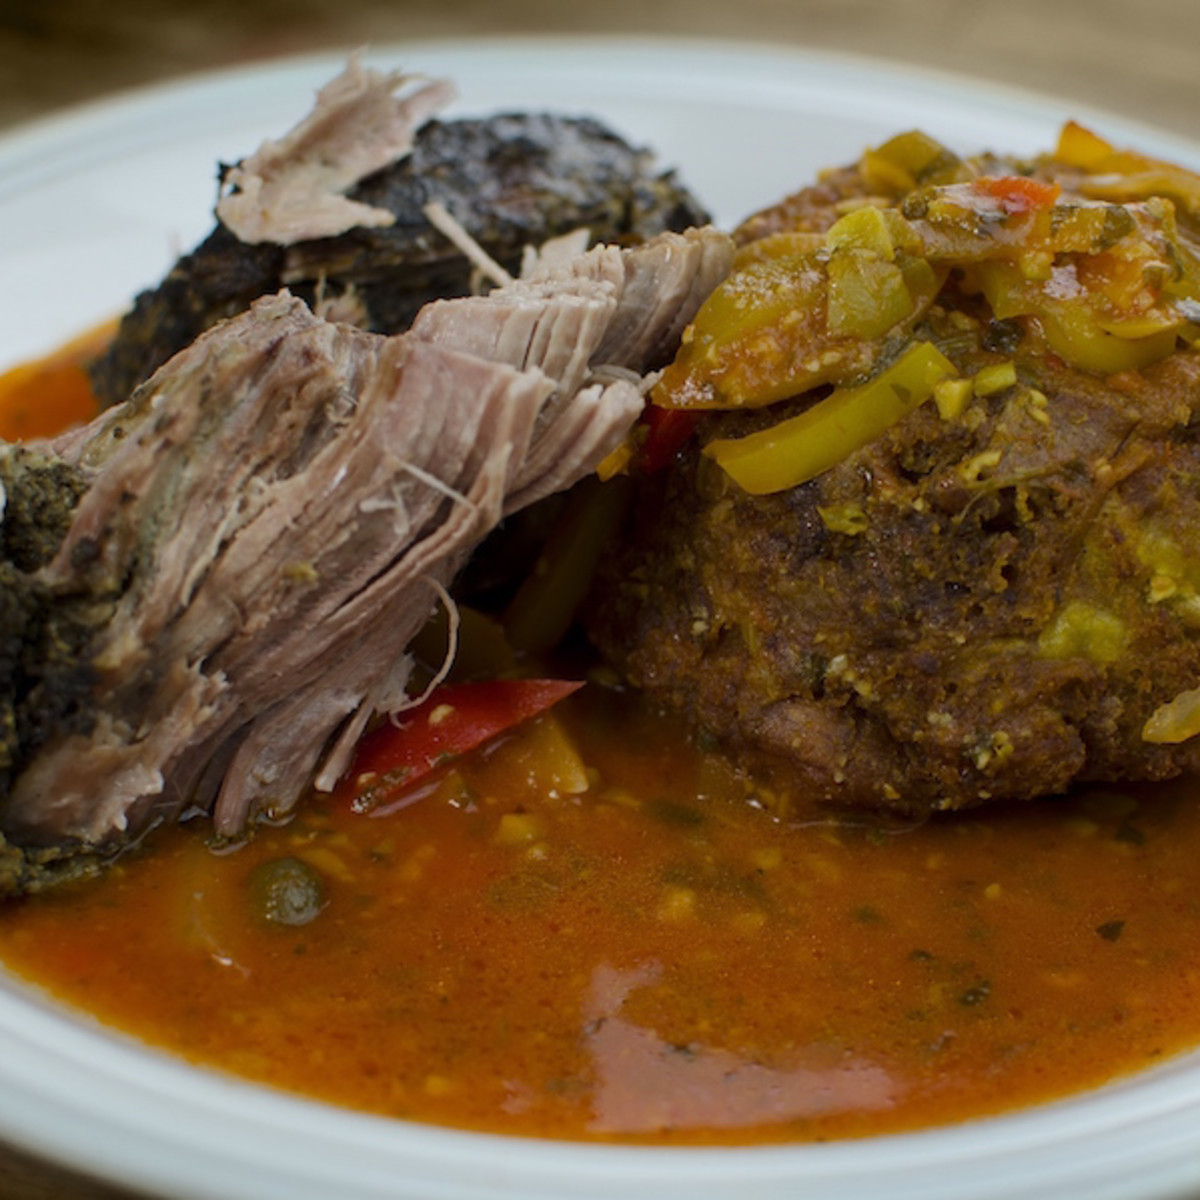 Chago's pernil and mofongo